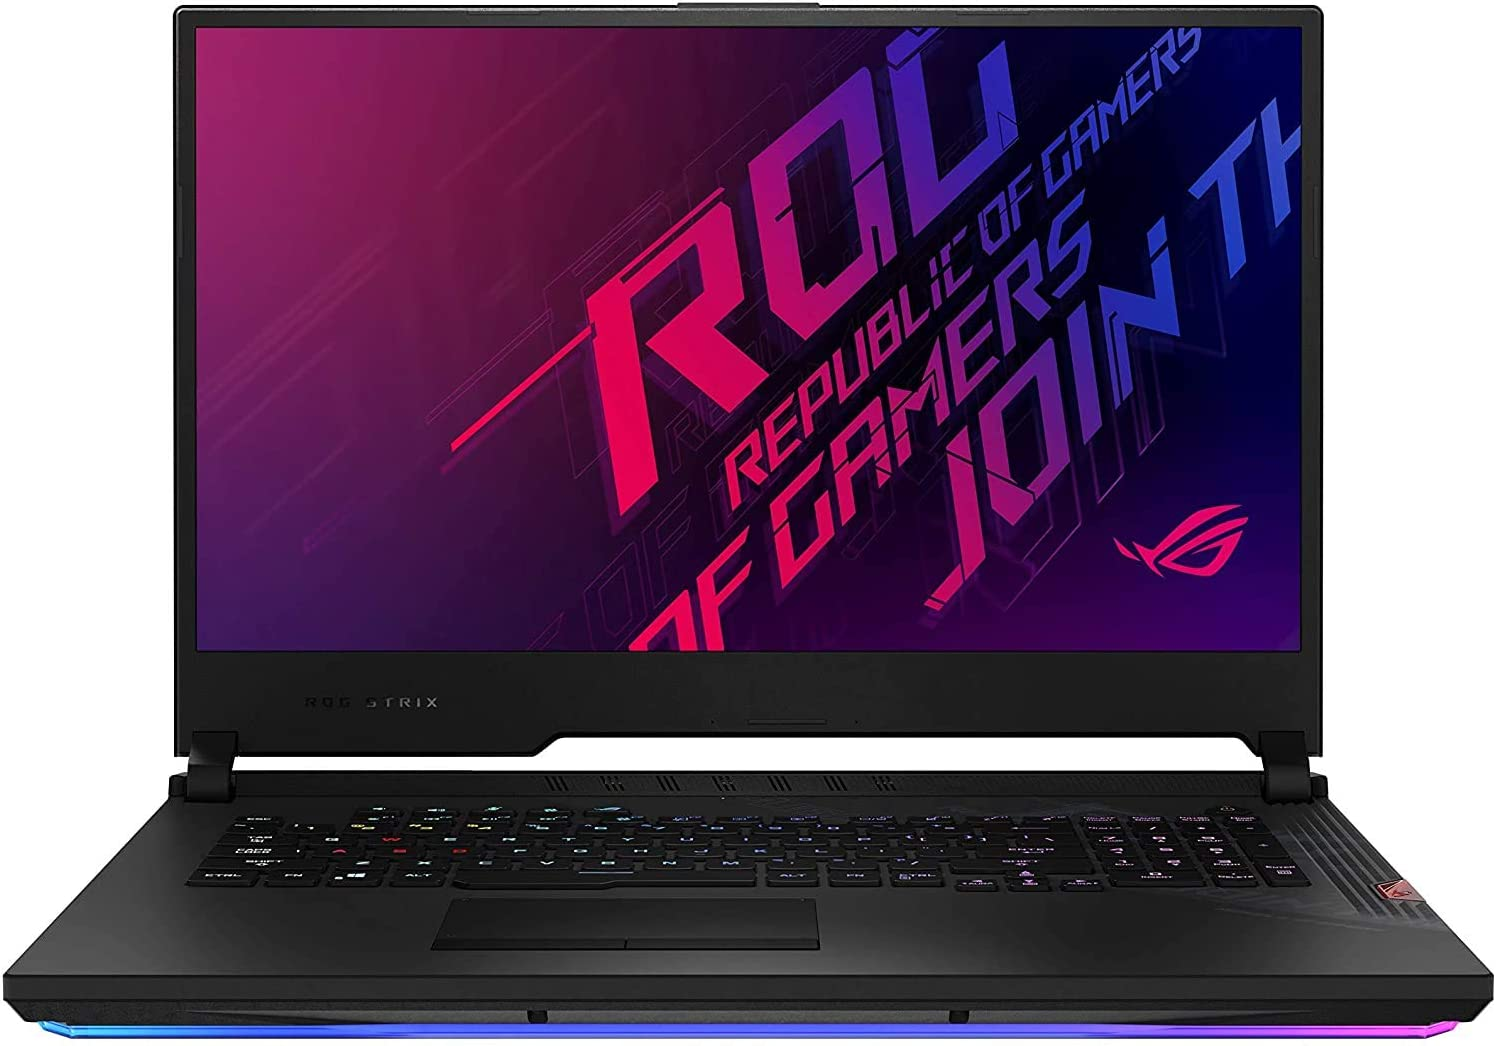 "ASUS ROG Strix Scar 17 Gaming Laptop, 17.3"" 300Hz FHD IPS Type Display, NVIDIA GeForce RTX 2070 Super, Intel Core i9-10980HK, 32GB DDR4, 1TB PCIe SSD, Per-Key RGB Keyboard, Win10 Pro, G732LWS-XS98"